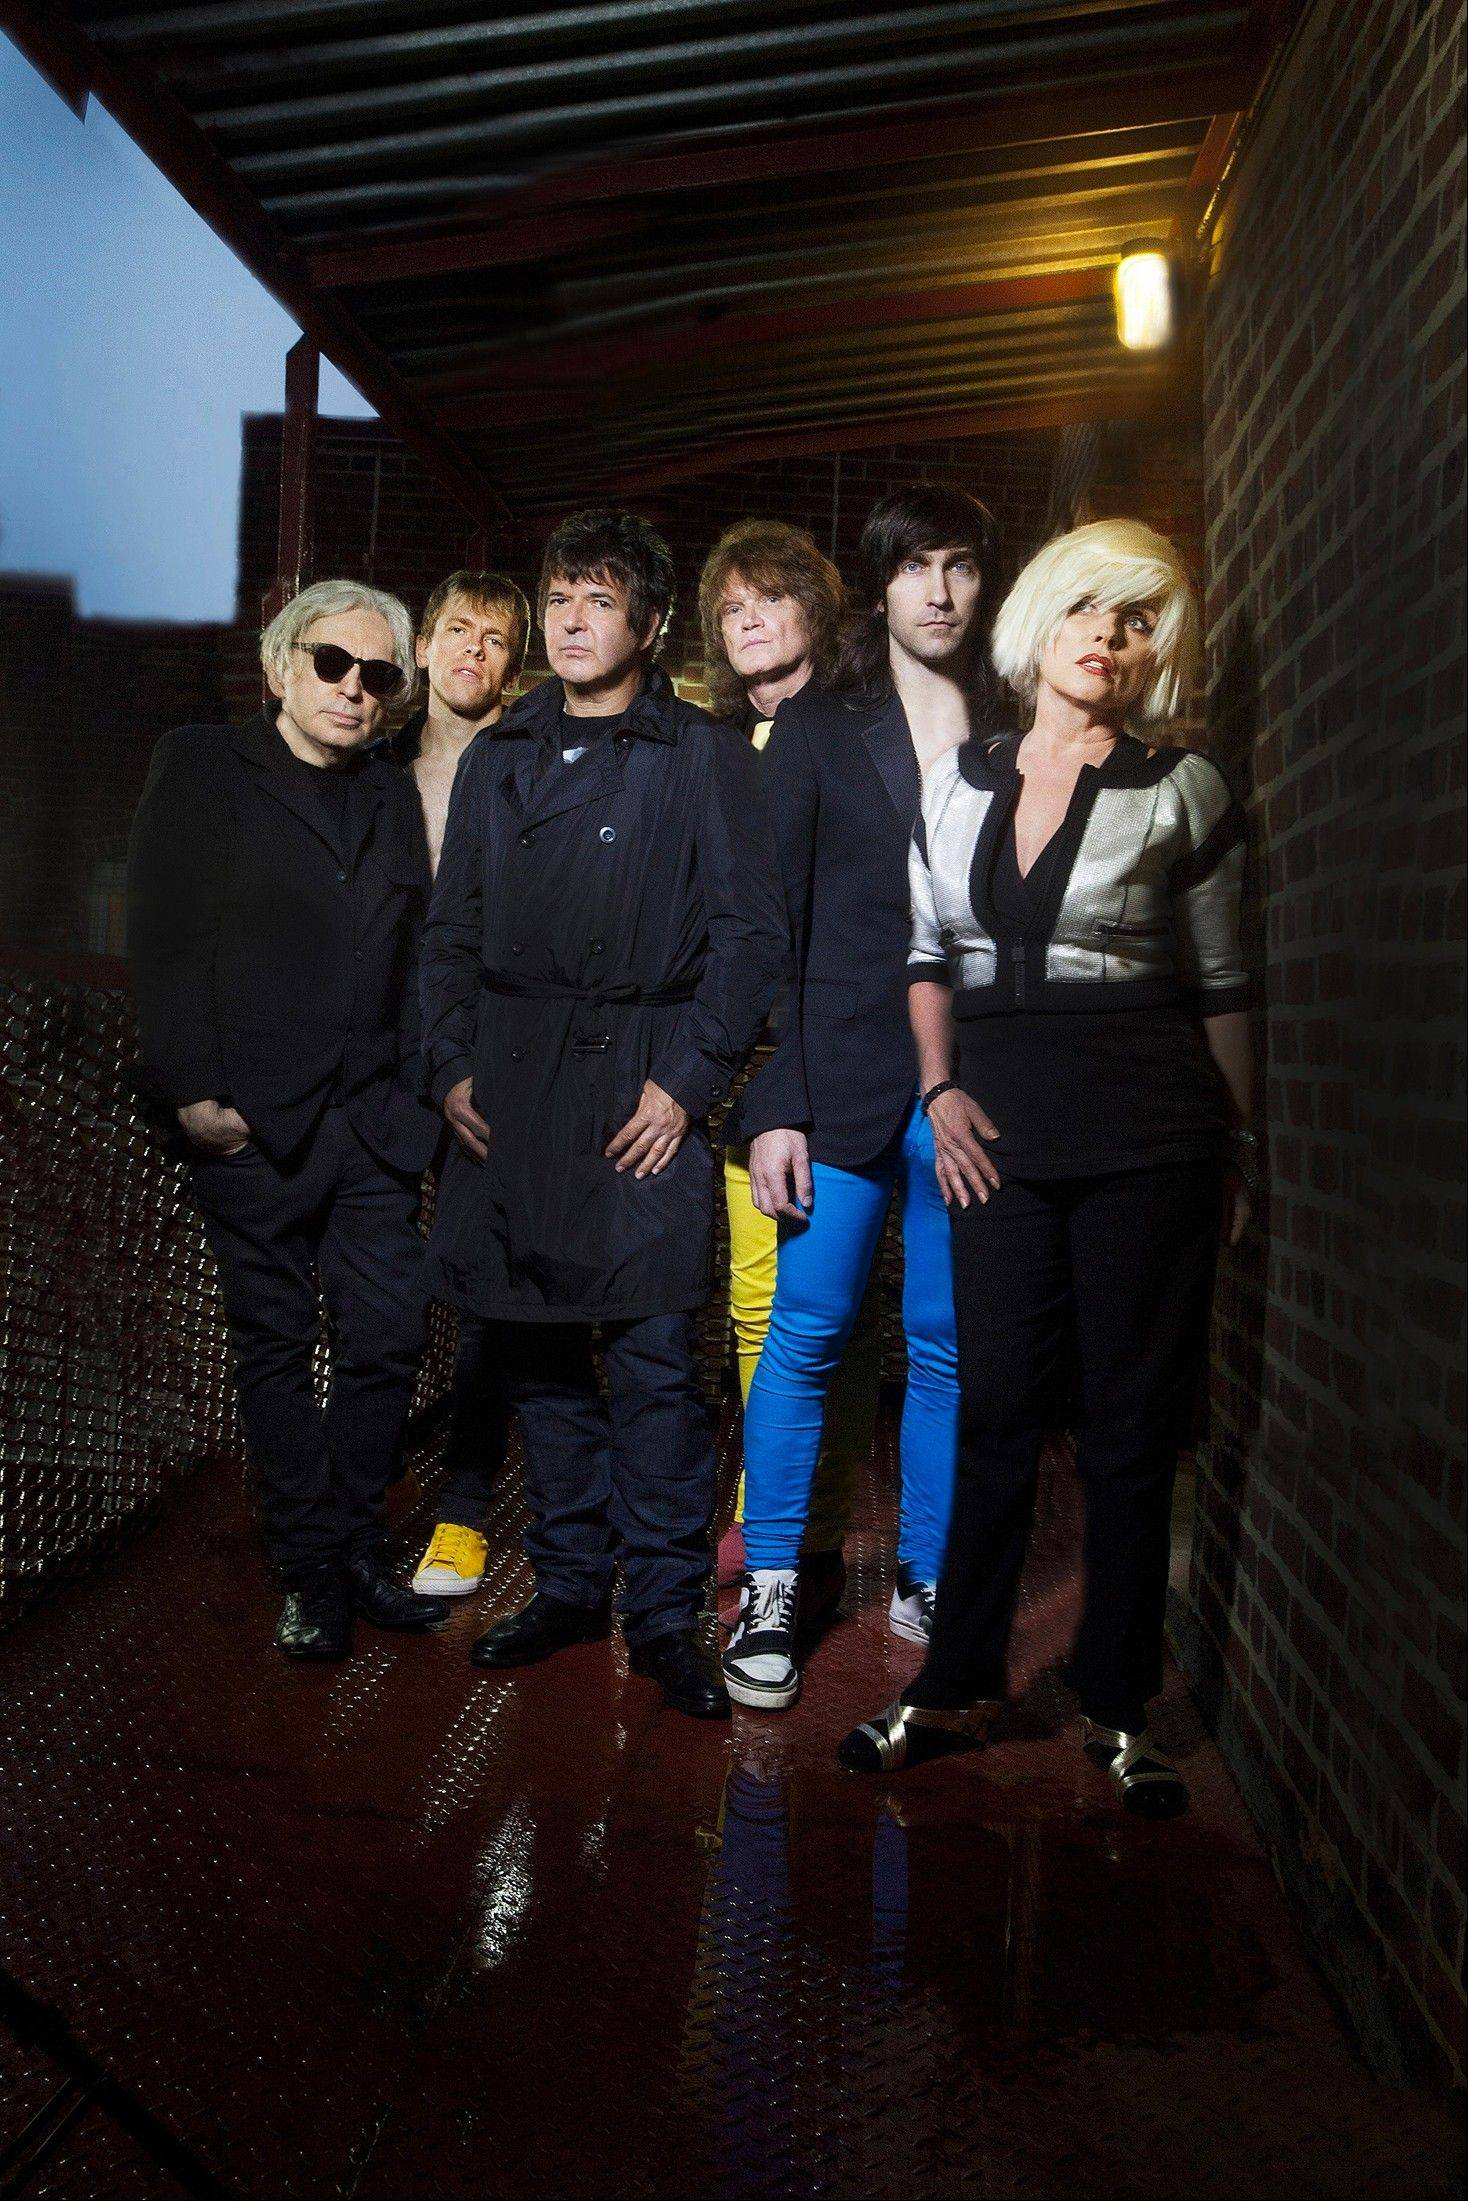 Blondie's fall tour brings them to Chicago Saturday for Riot Fest.